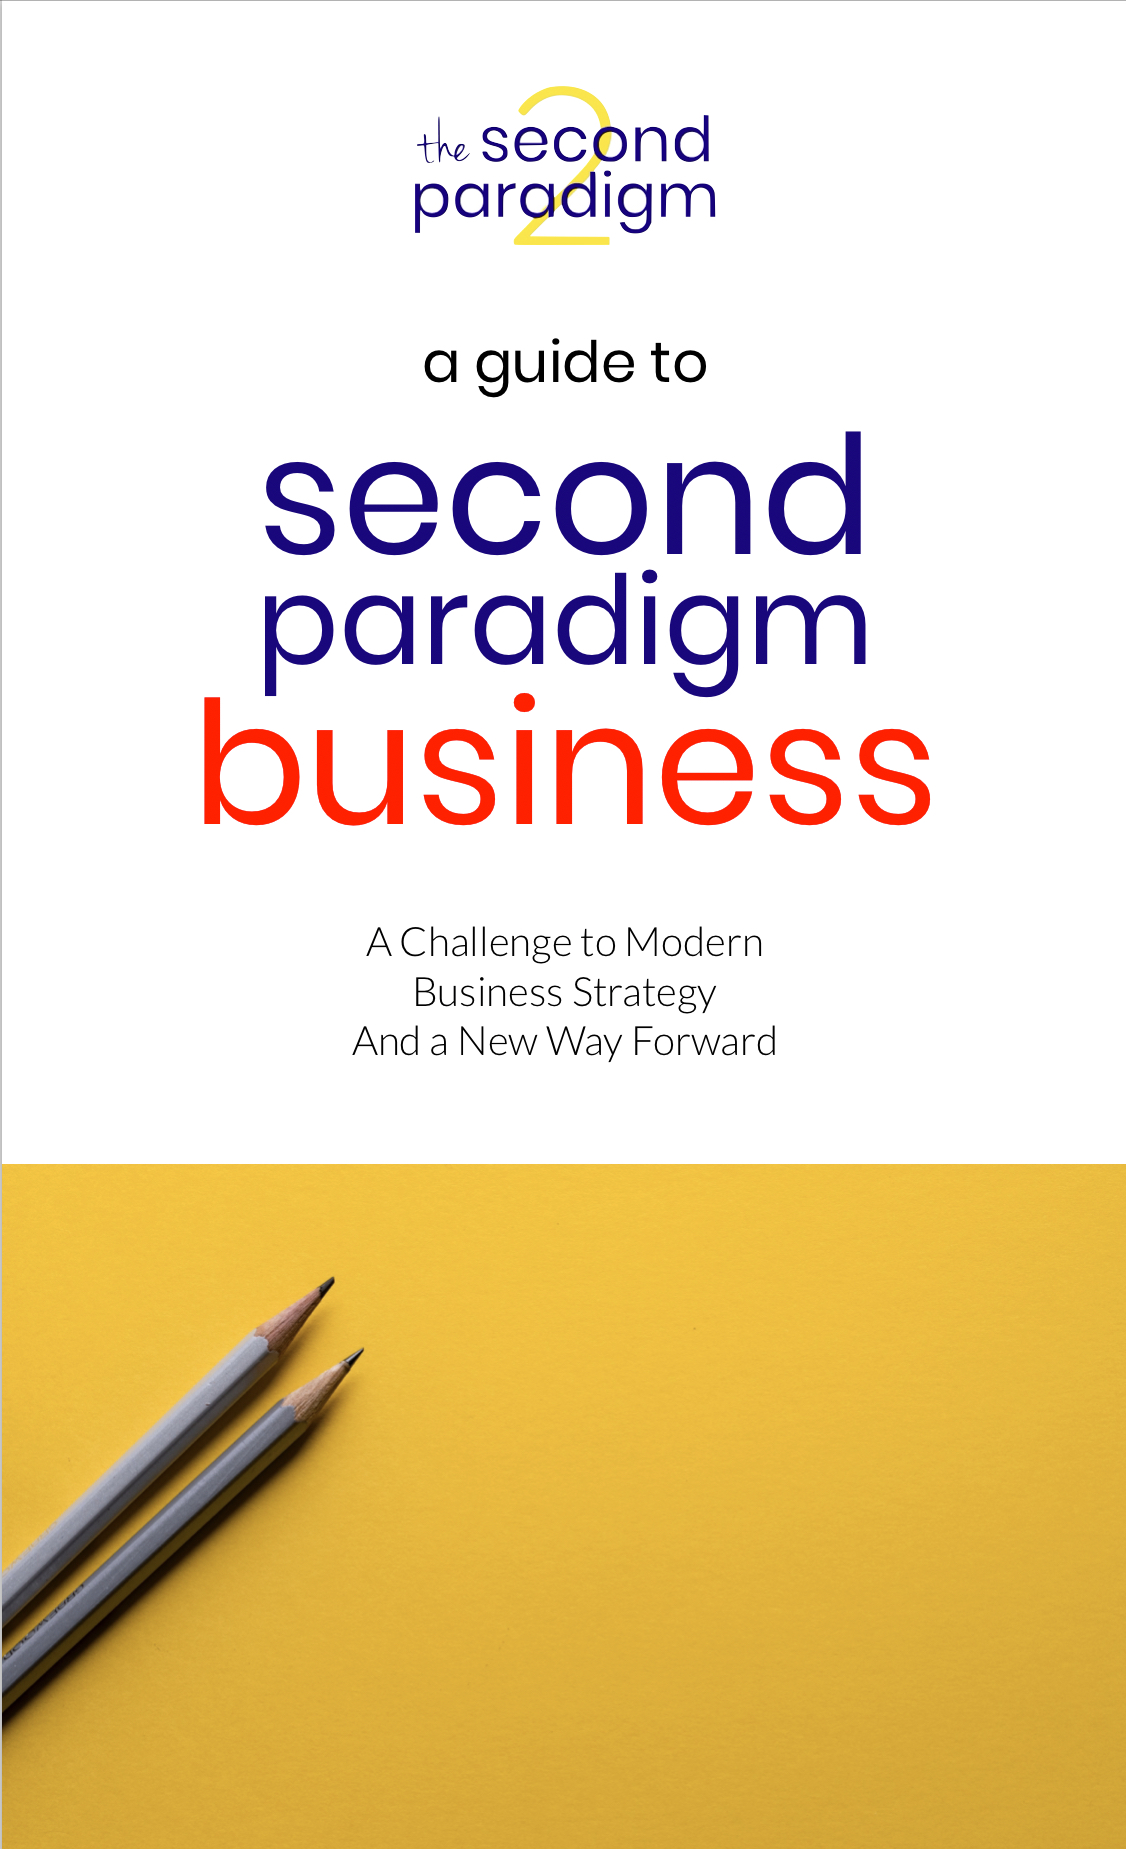 A Guide to Second Paradigm Business